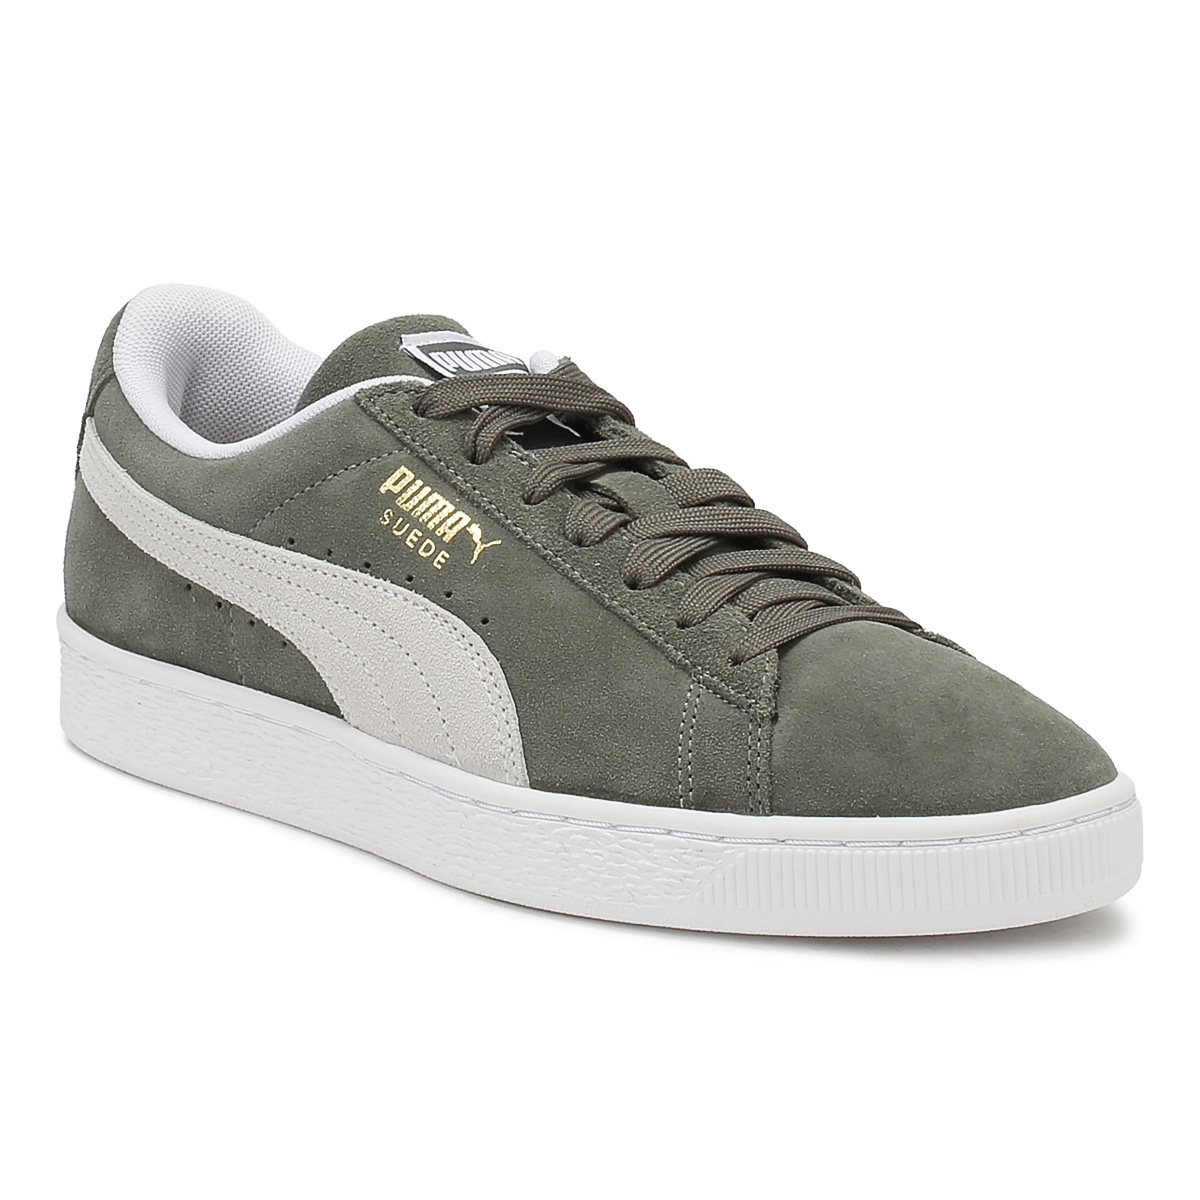 3200fa613867 PUMA Mens Classic Trainers Castor Grey Suede Lace Up Casual Shoes